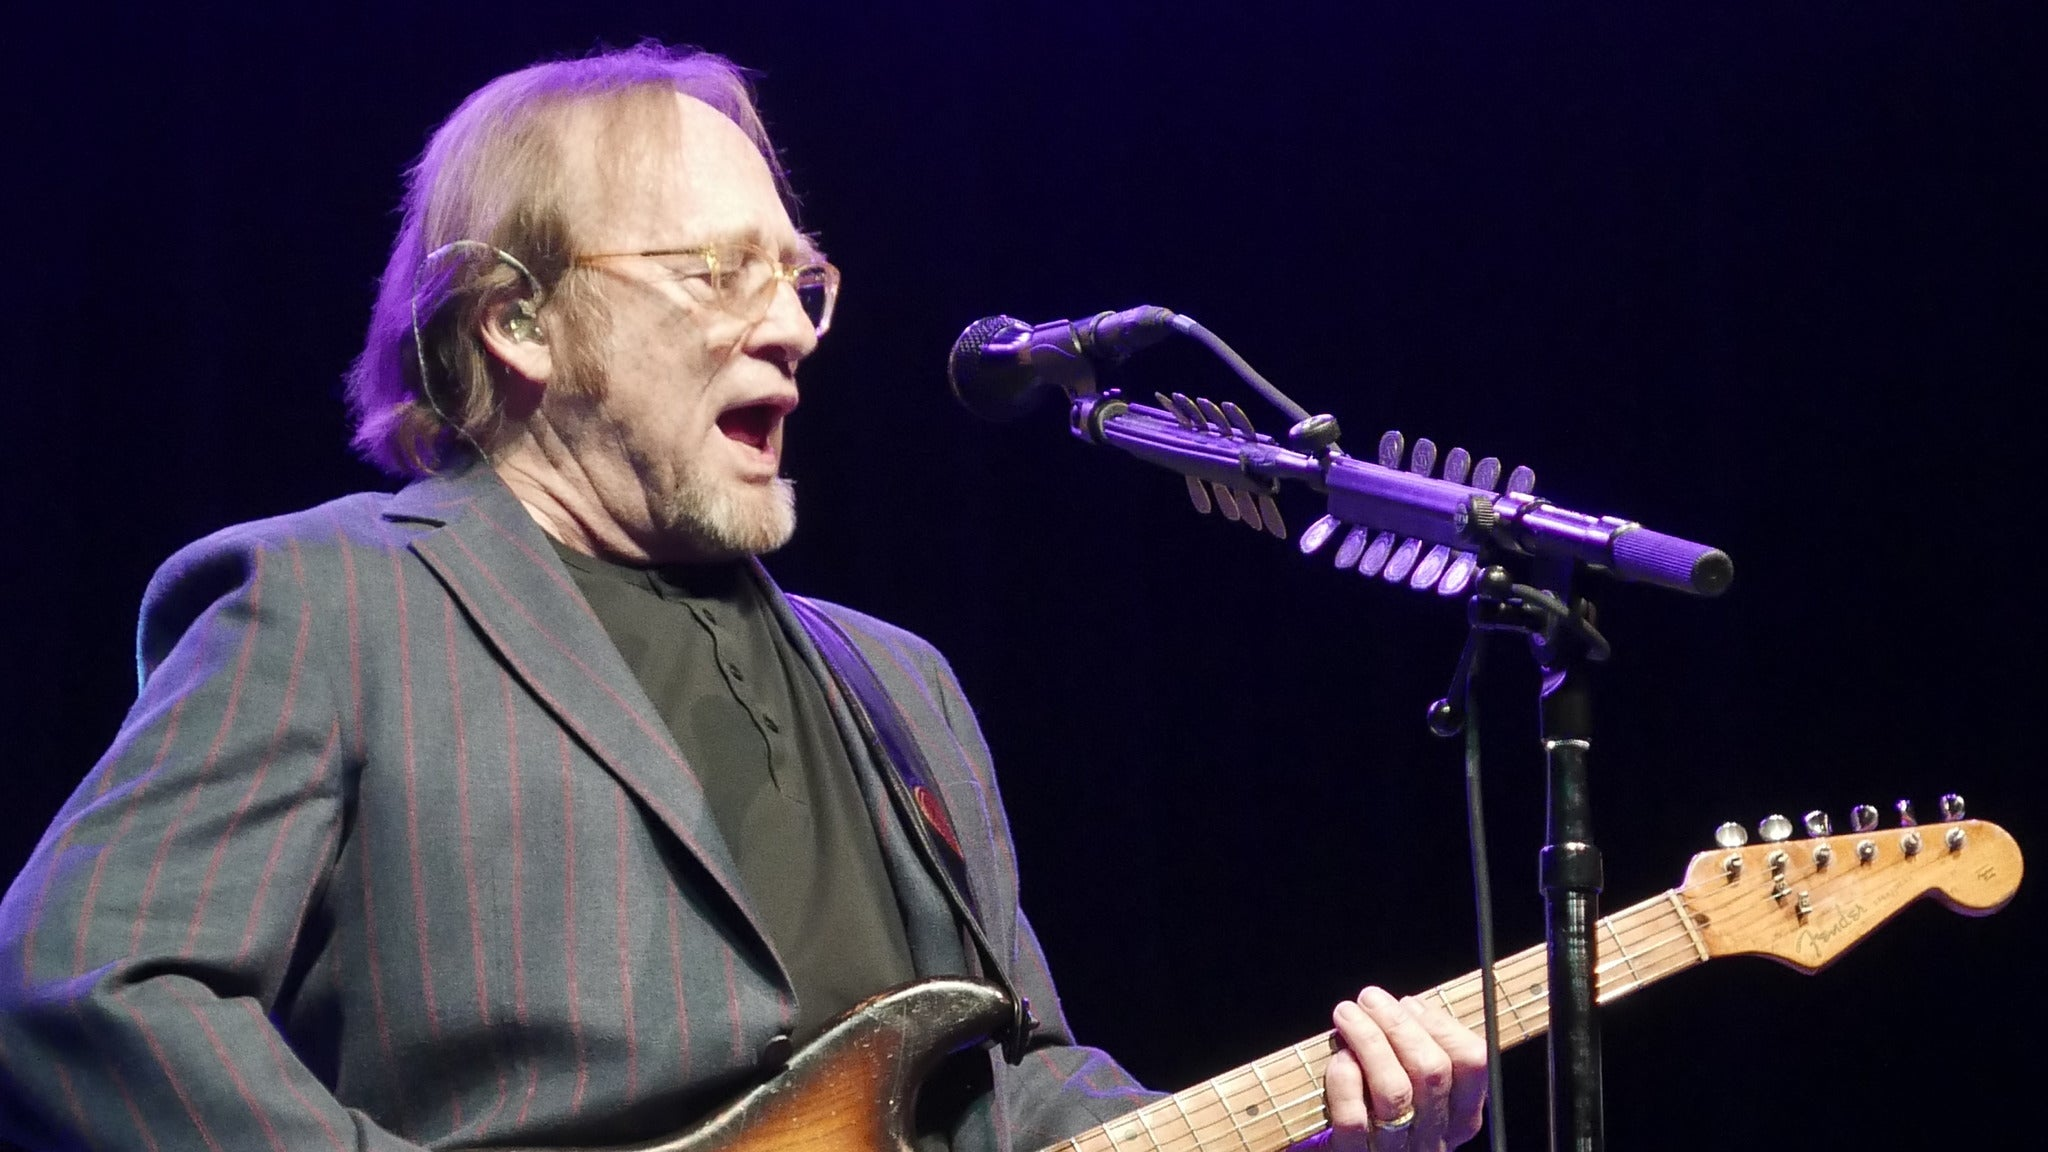 Stephen Stills & Judy Collins at Saban Theatre